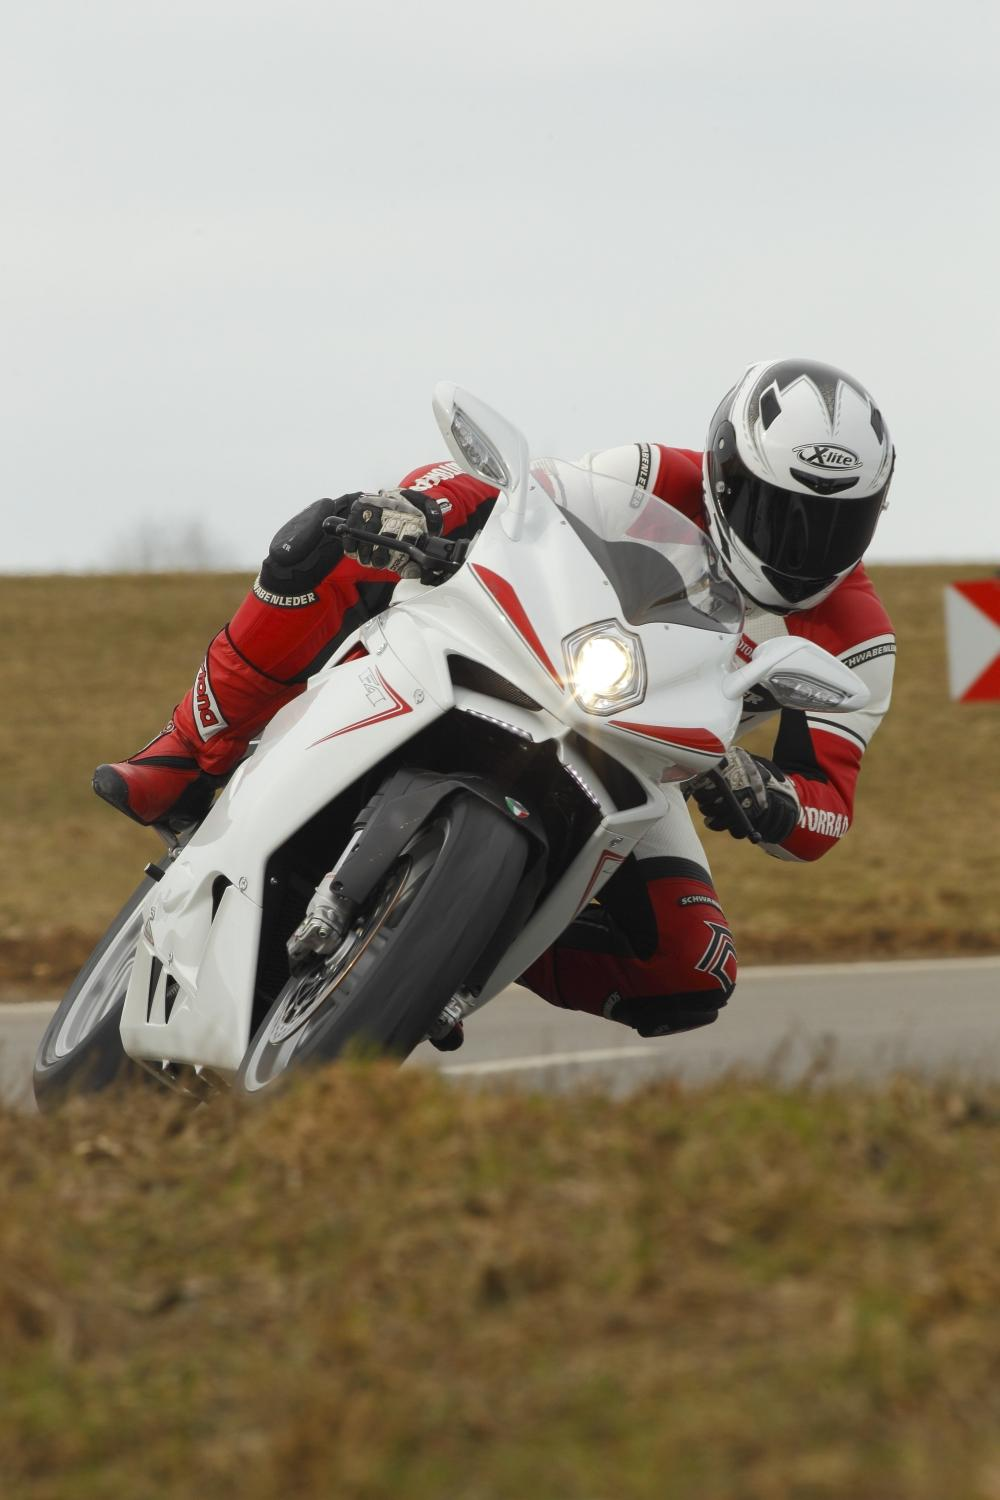 http://www.motorrad-bilder.at/slideshows/291/009267/mv-agusta-f4-005.jpg